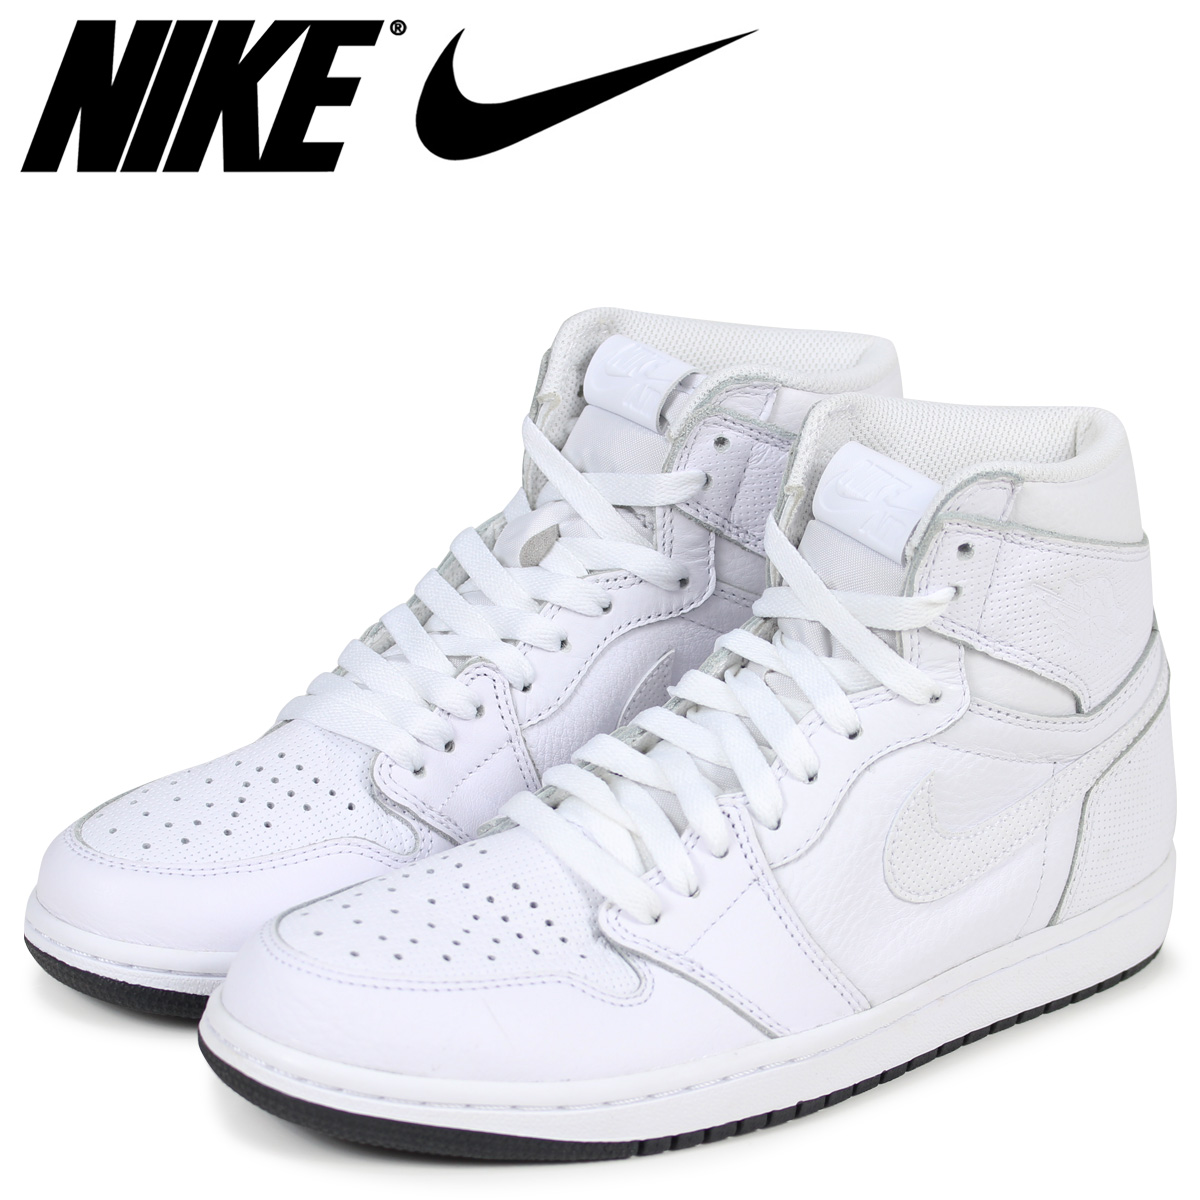 30b3ee7c8ab6 NIKE Nike Air Jordan 1 nostalgic high sneakers men AIR JORDAN 1 RETRO HIGH  OG 555